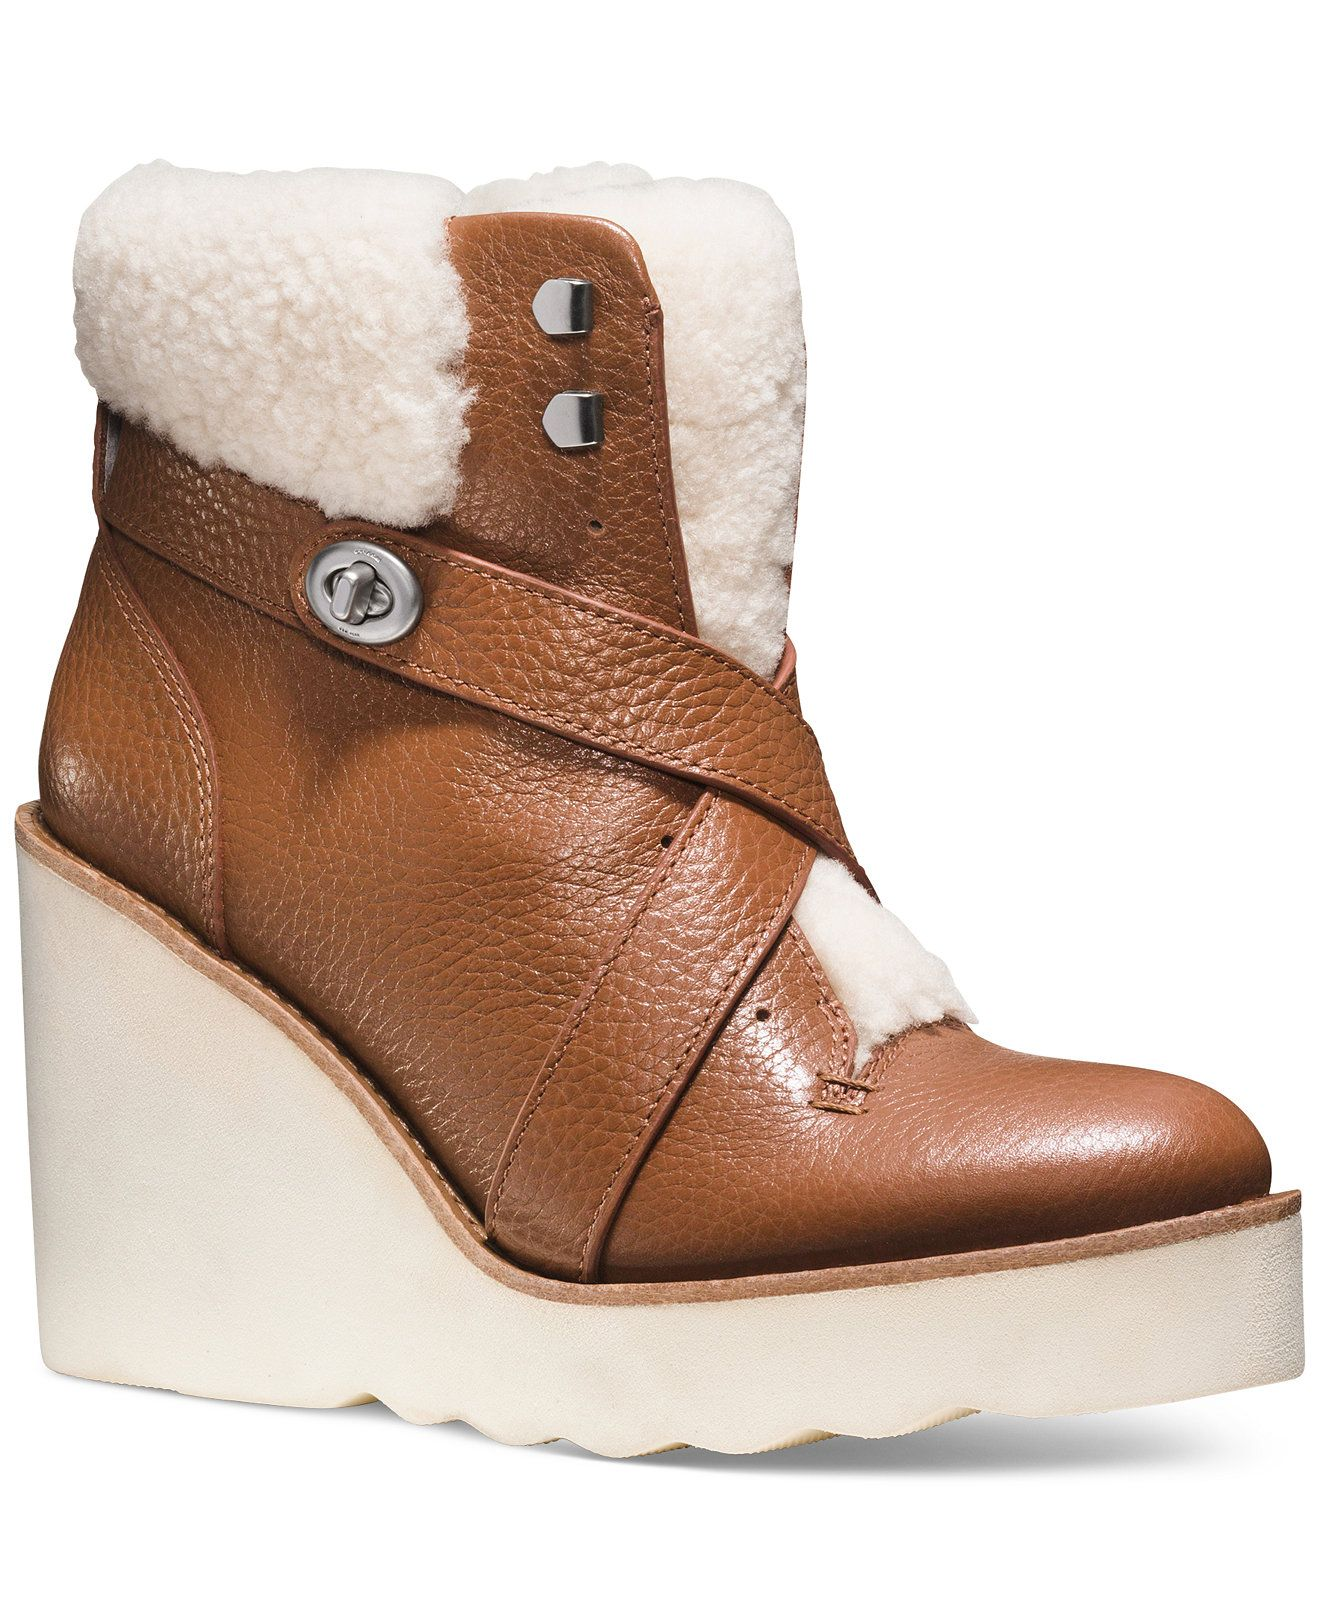 ... greece coach kenna cold weather wedge booties boots shoes macys e8f2b  b5c19 ... b4fb470d0d06